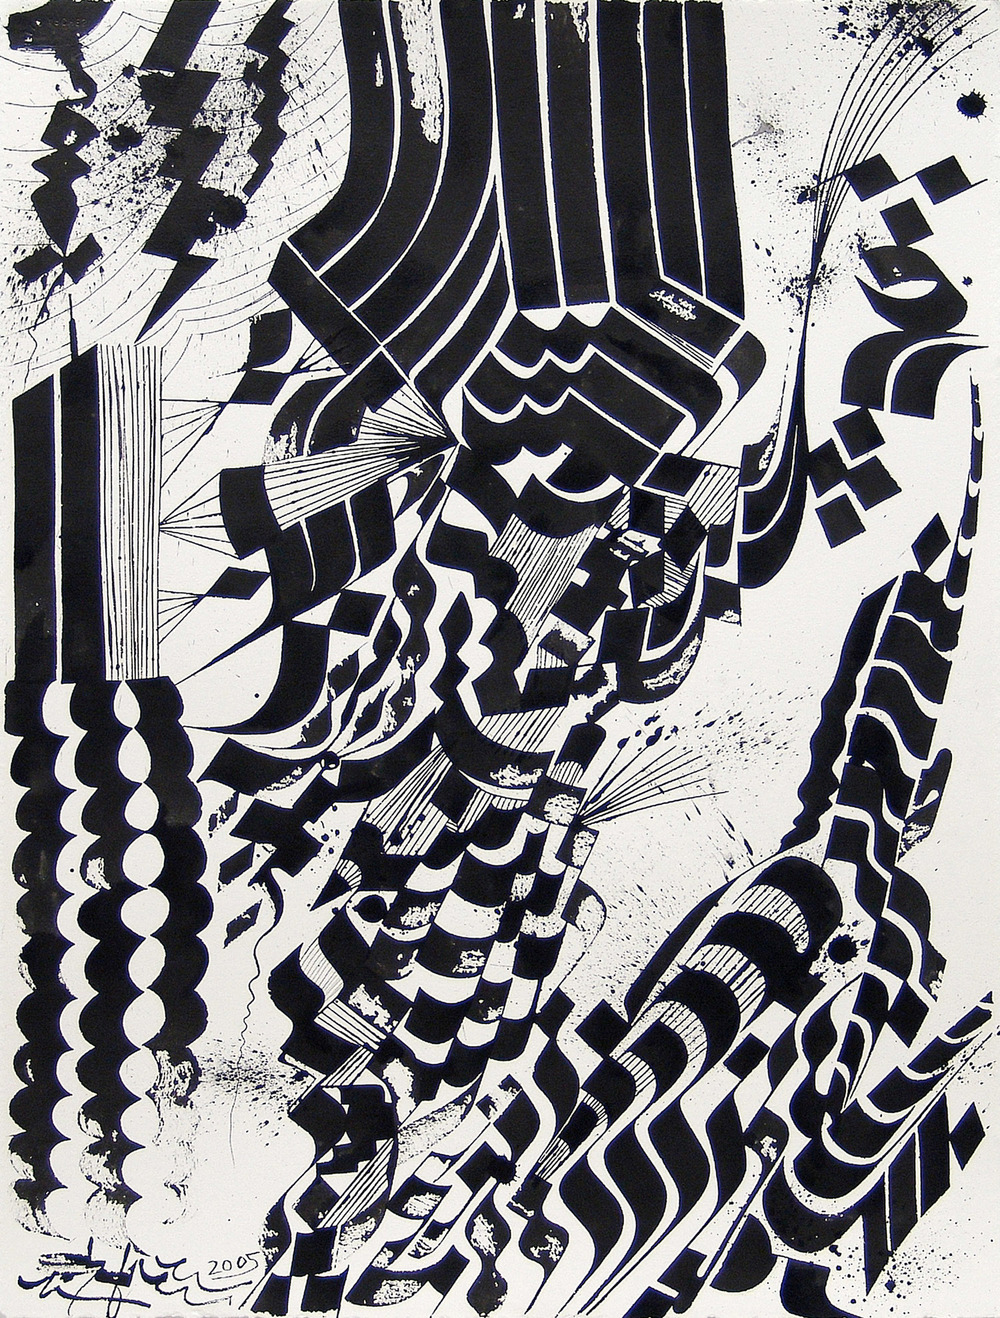 9-11 Requiem, 2005 sumi ink on arches paper 30 x 22 inch